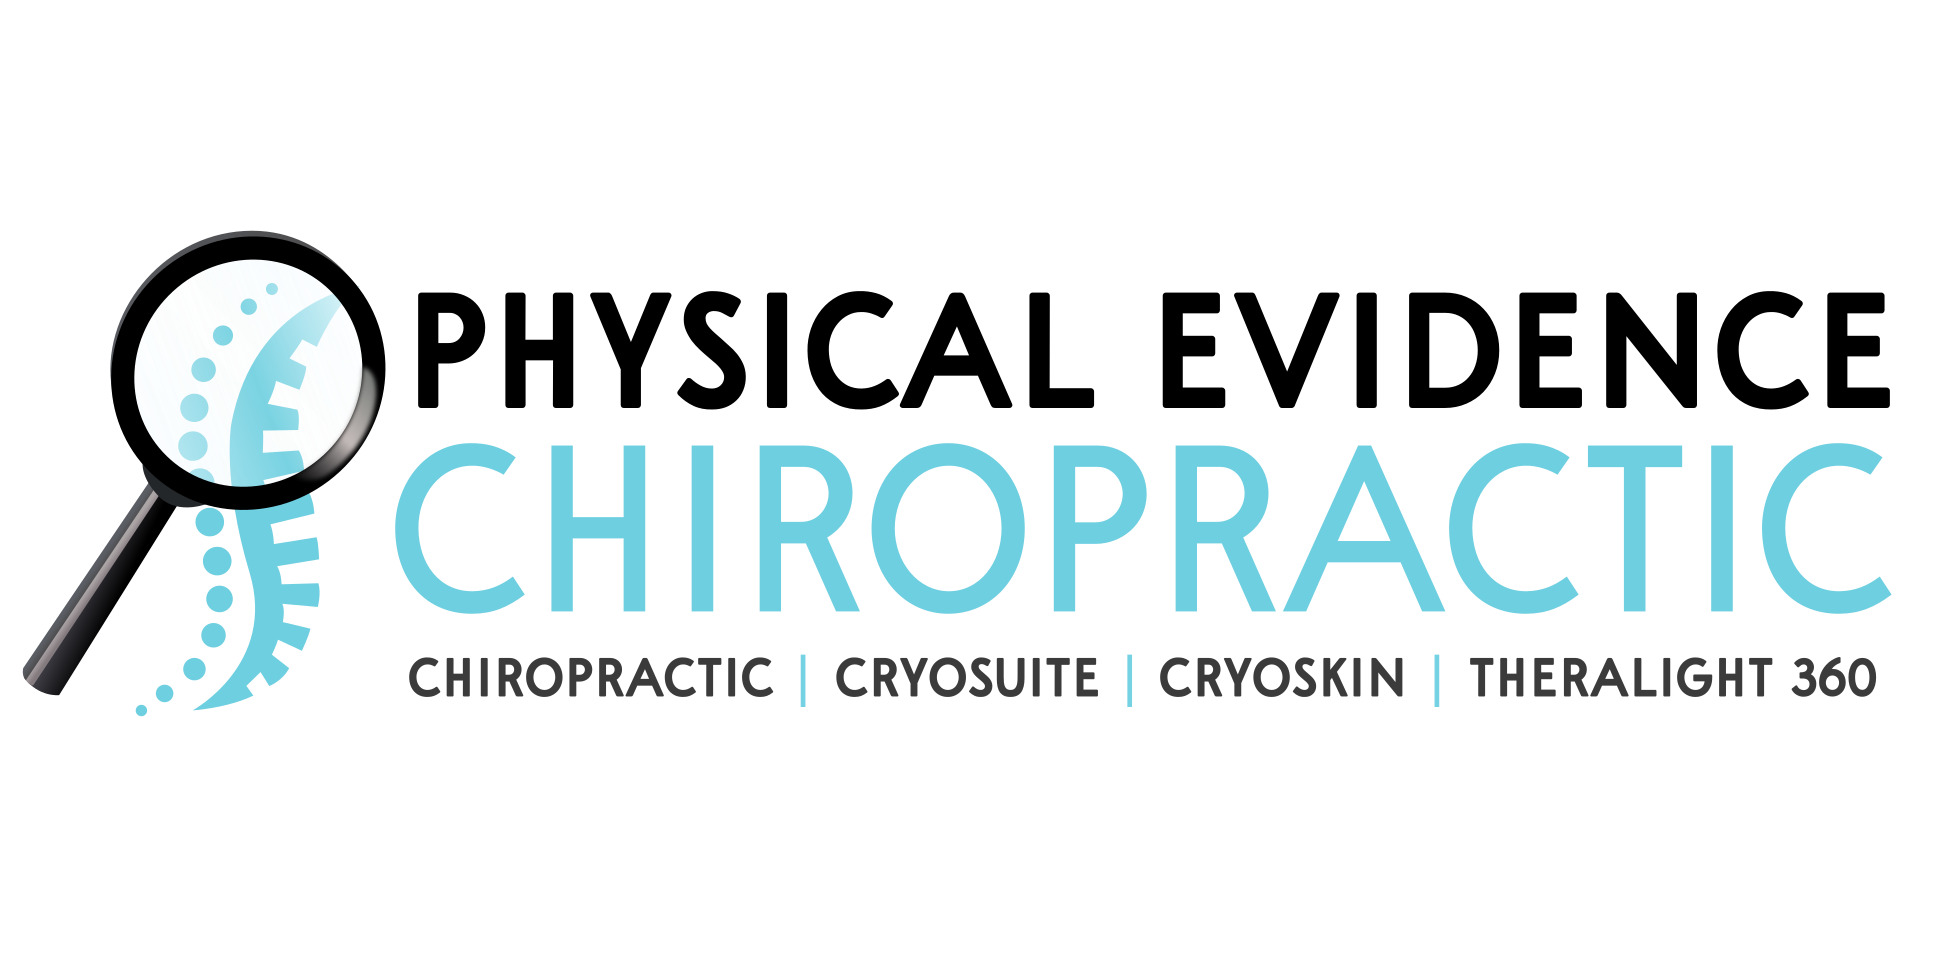 Physical Evidence Chiropractic Outlines the Benefits of Alternative Medicine